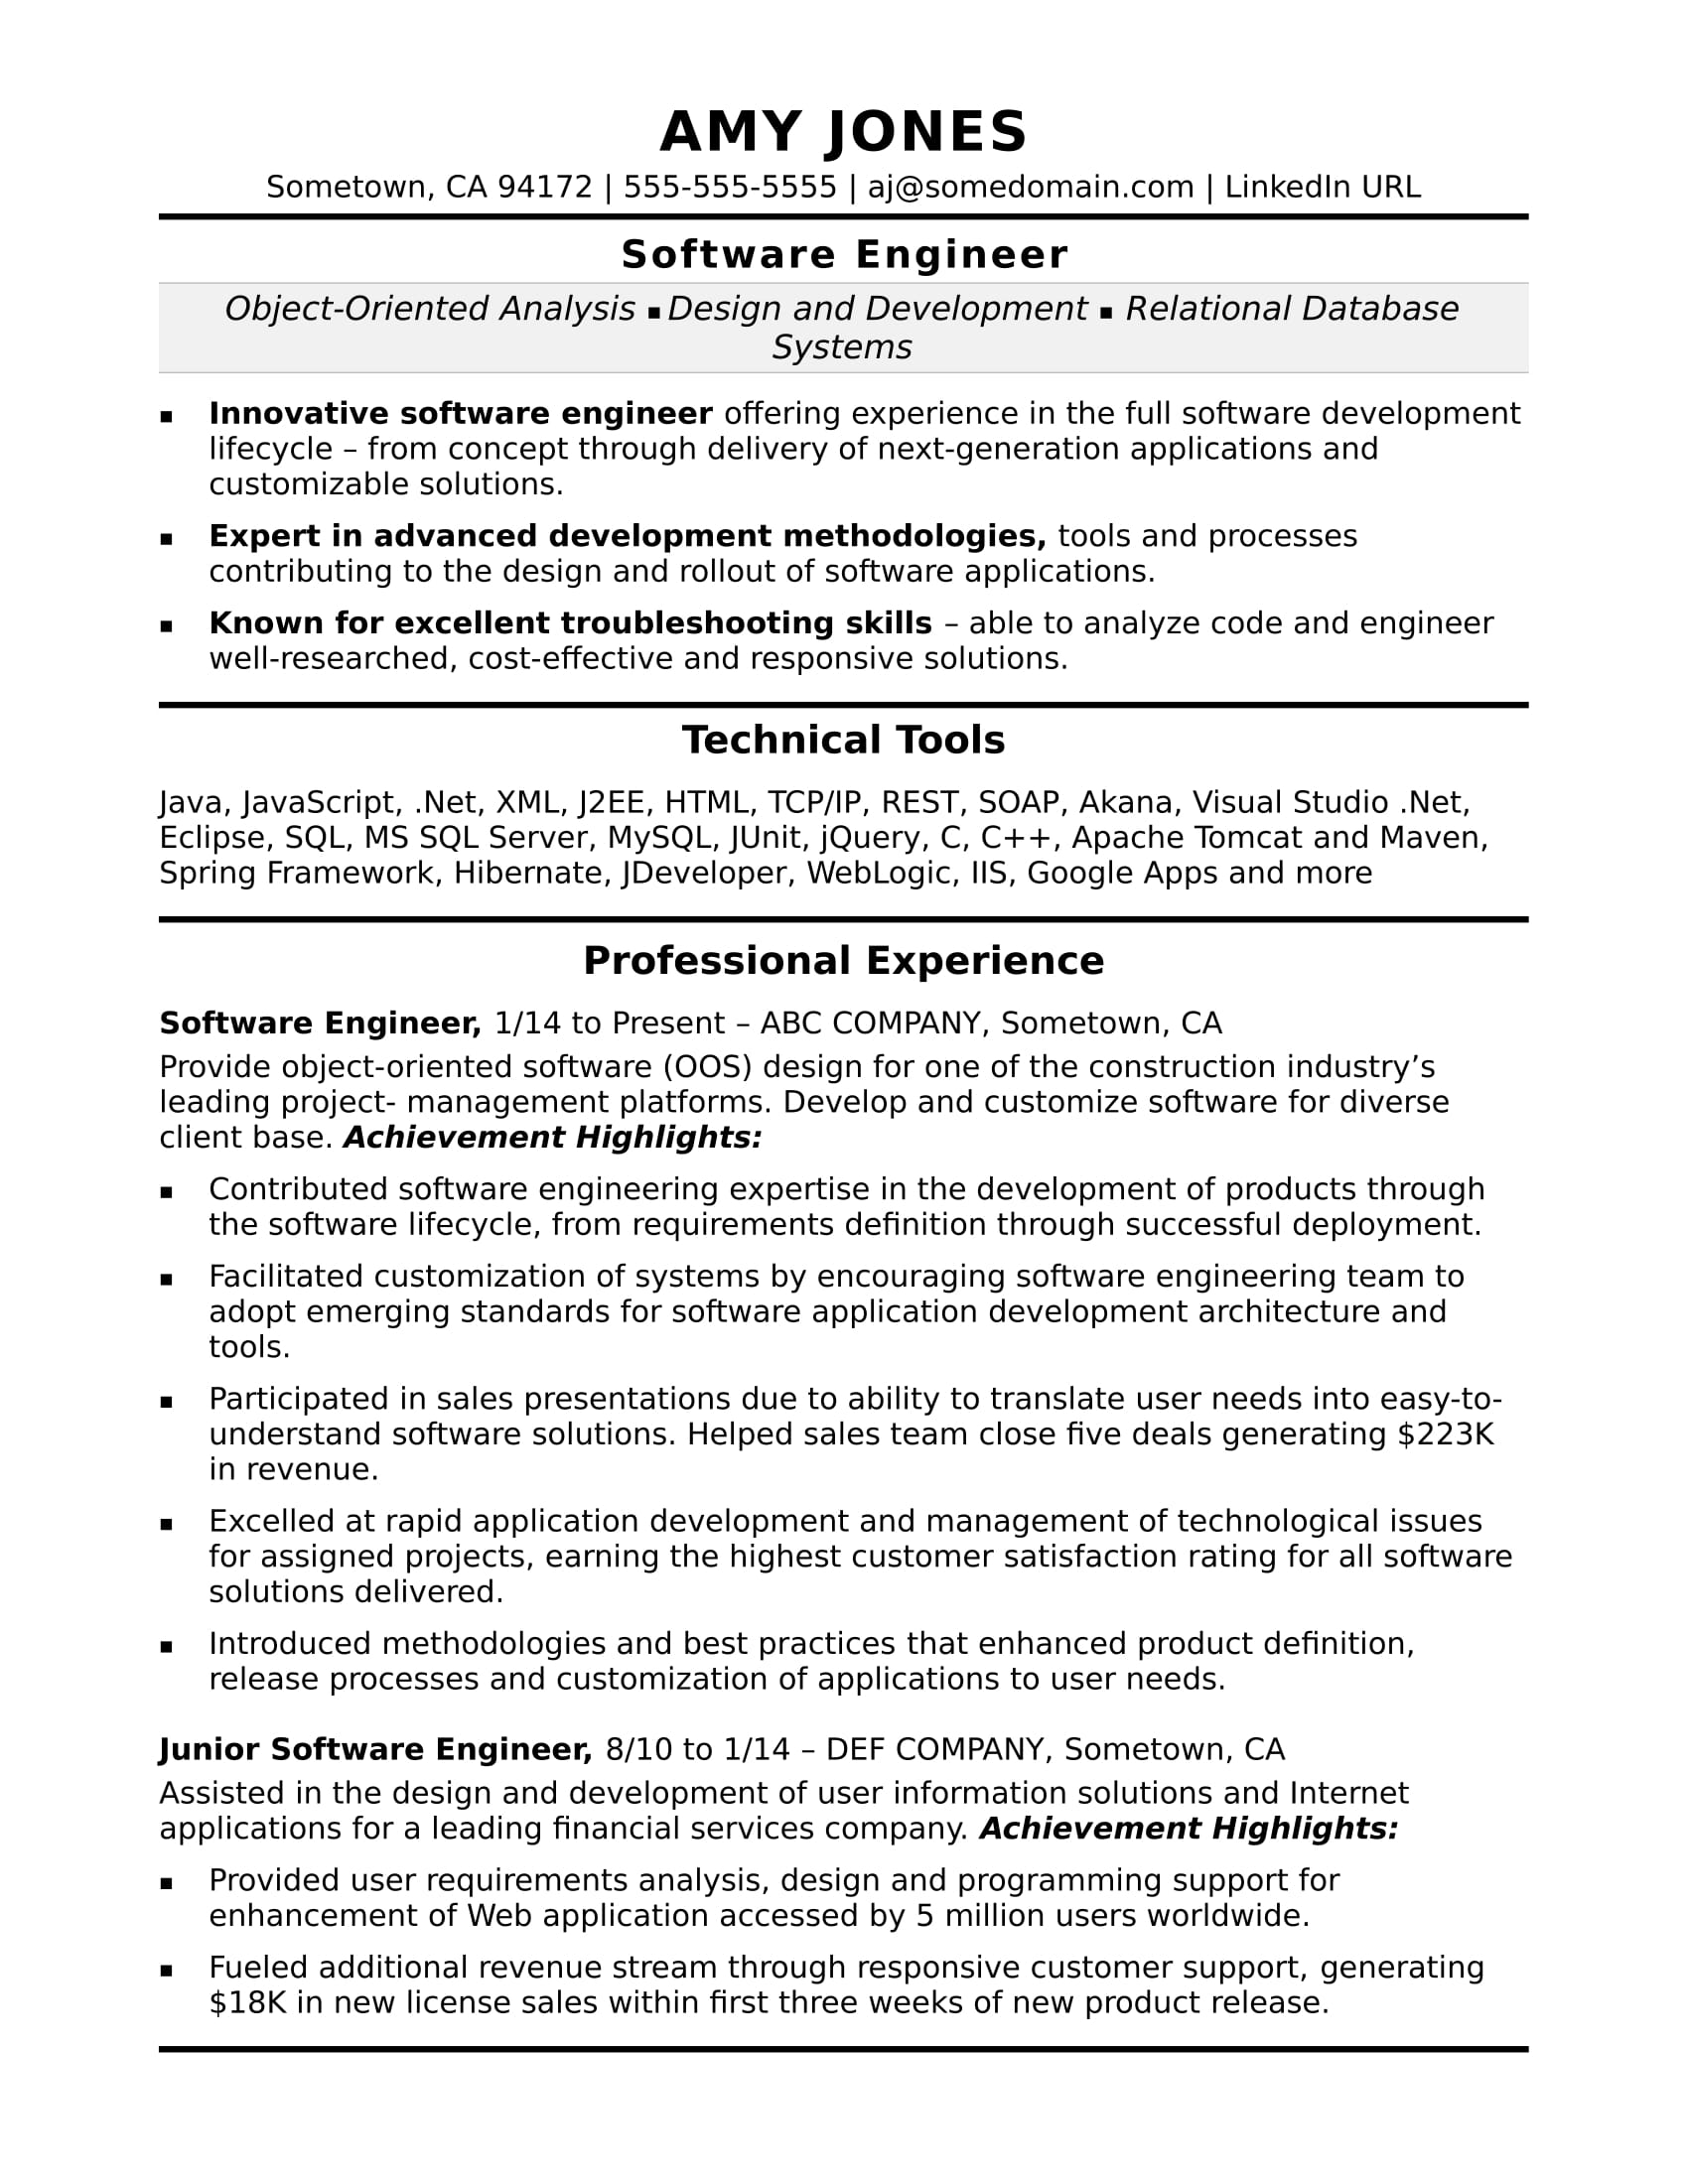 Sample Resume For A Midlevel Software Engineer  Sample Resume It